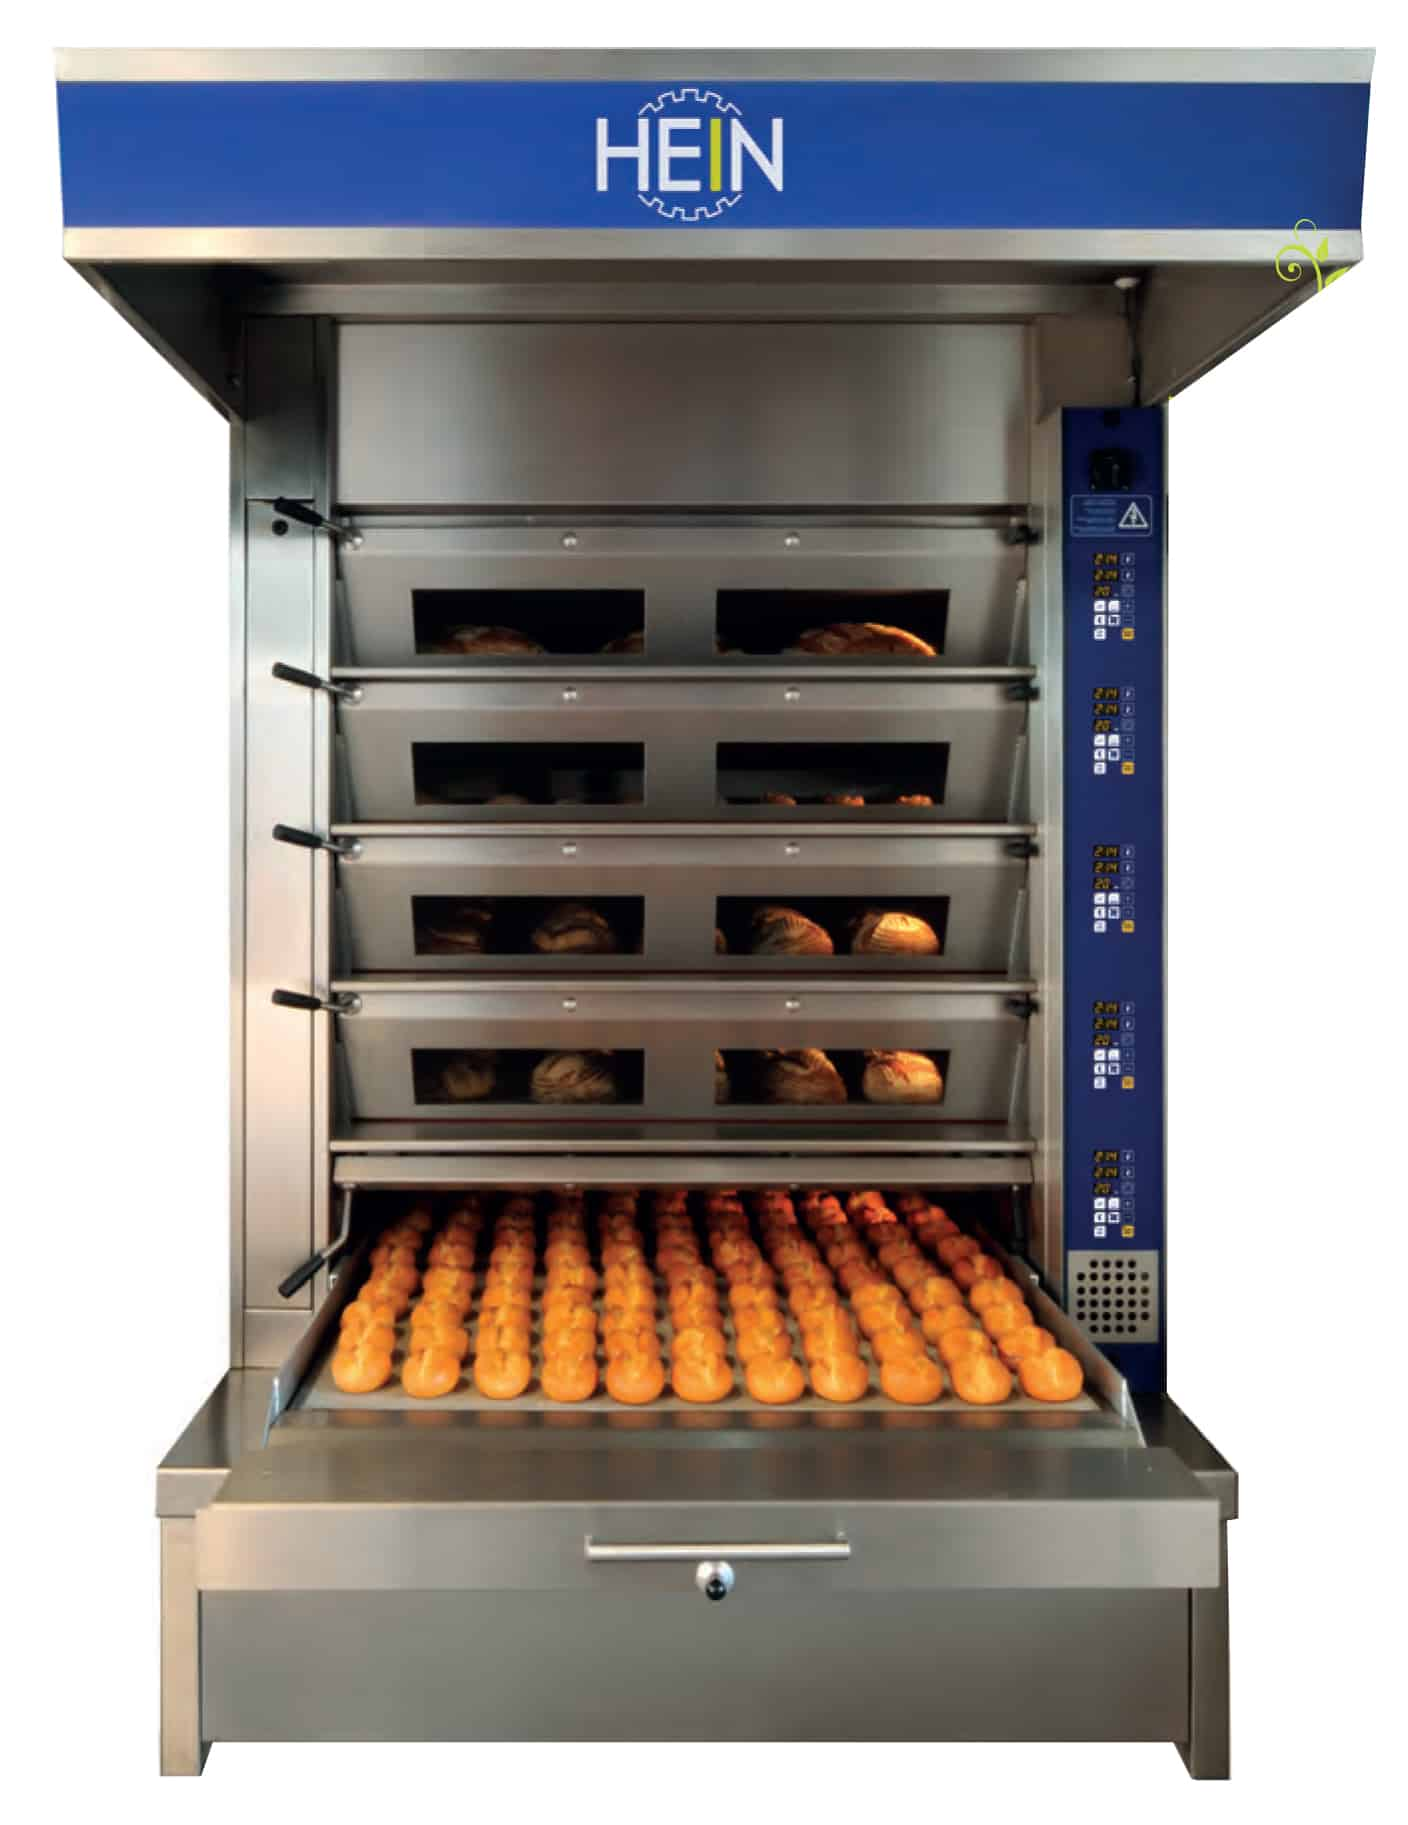 Hein Electro Electric Deck Oven Tmb Baking